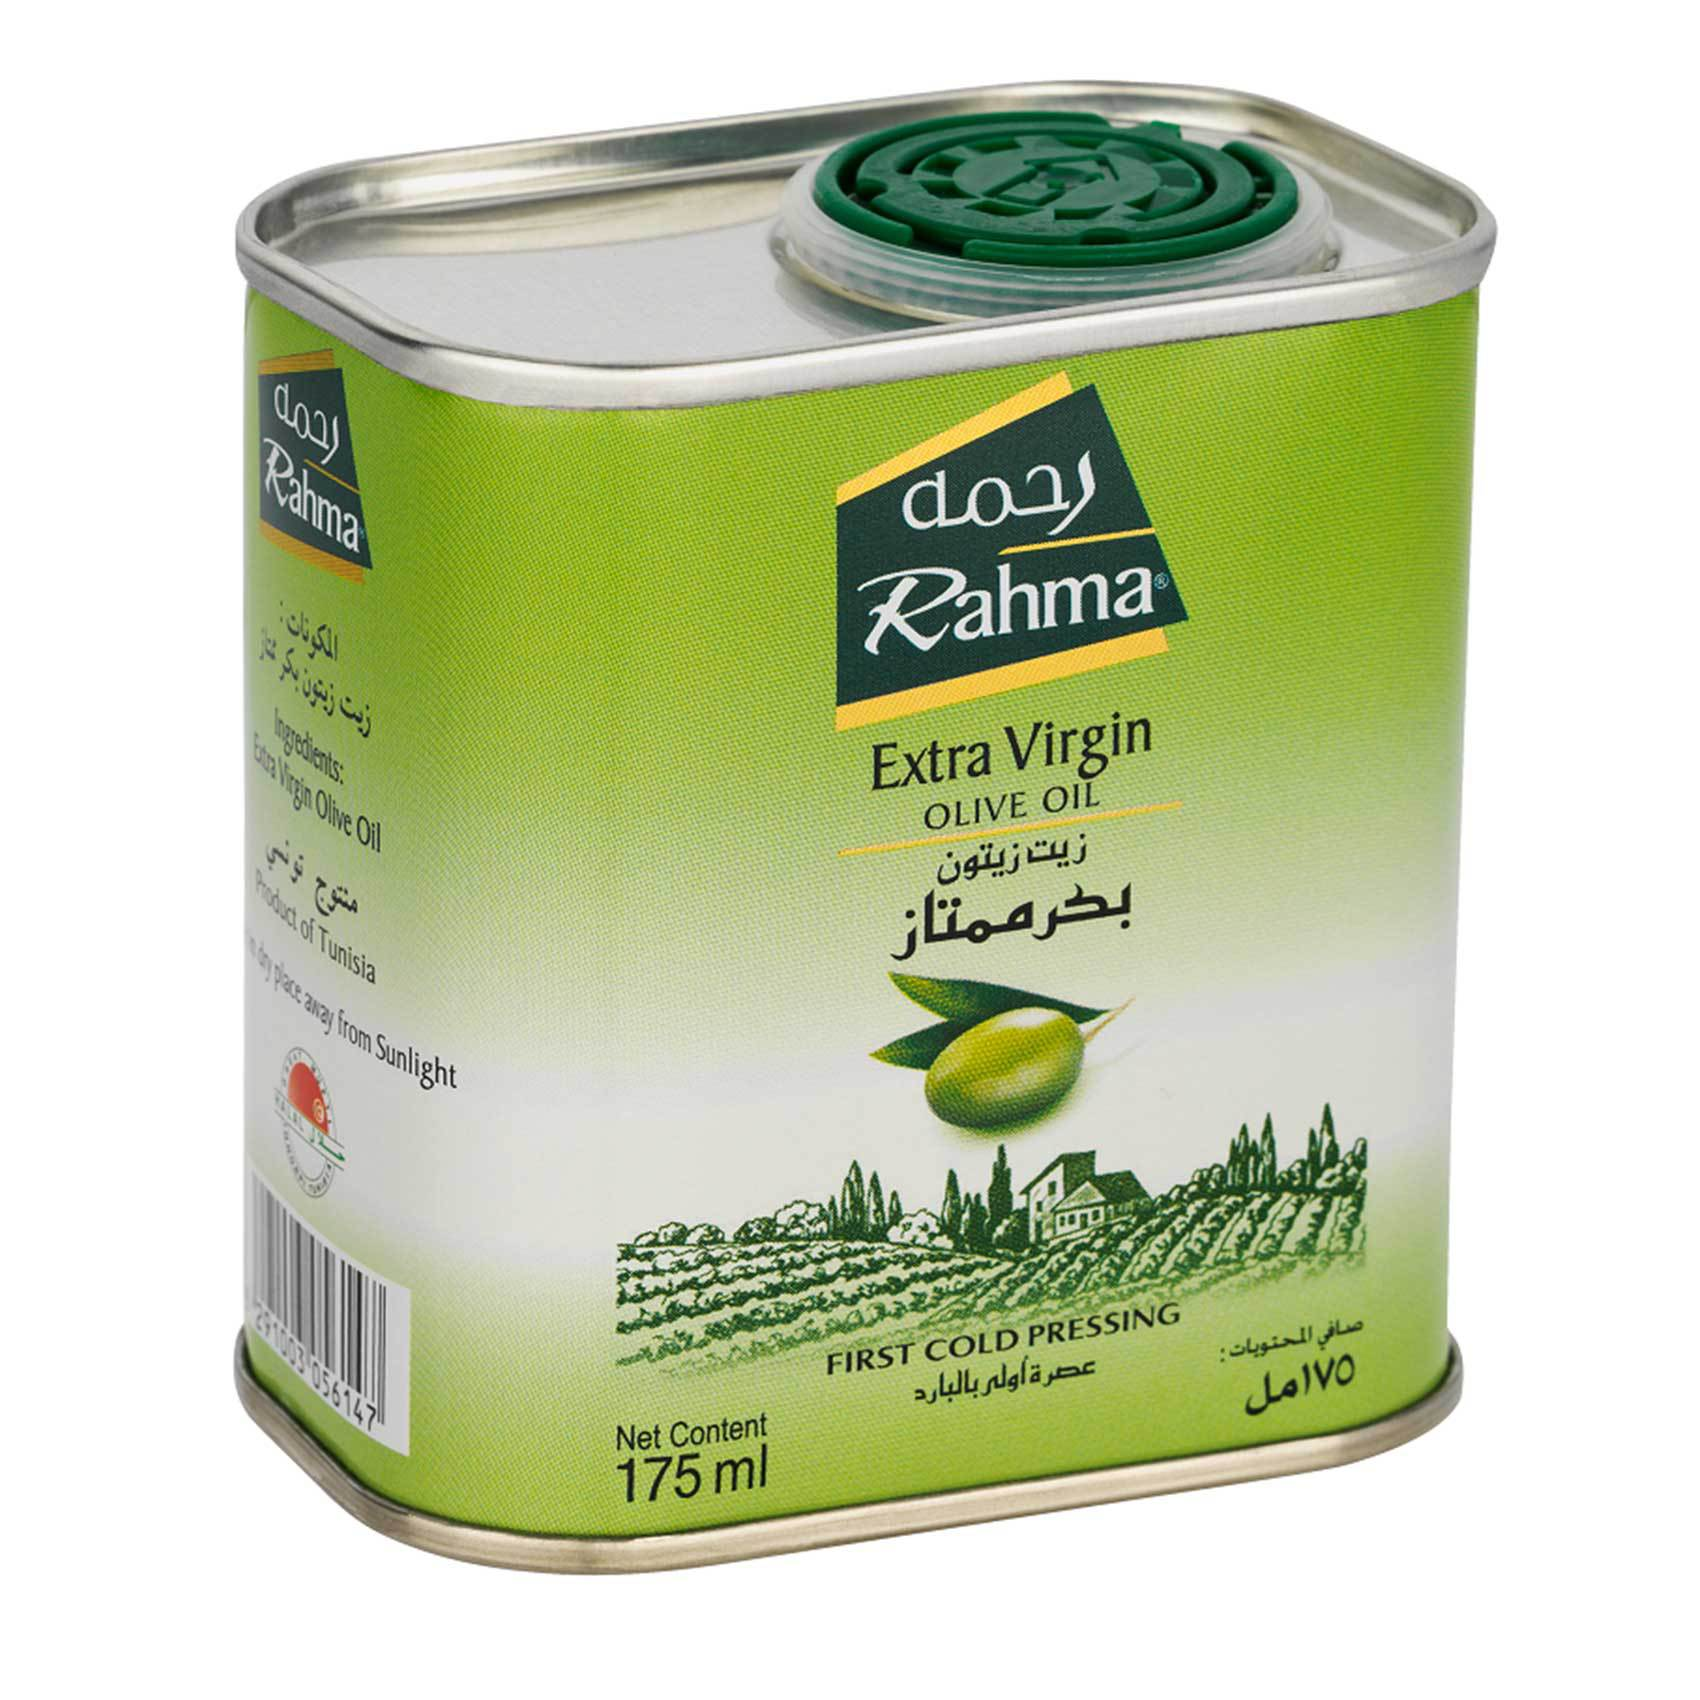 RAHMA EXTRA VIRGIN OLIVE OIL 175ML